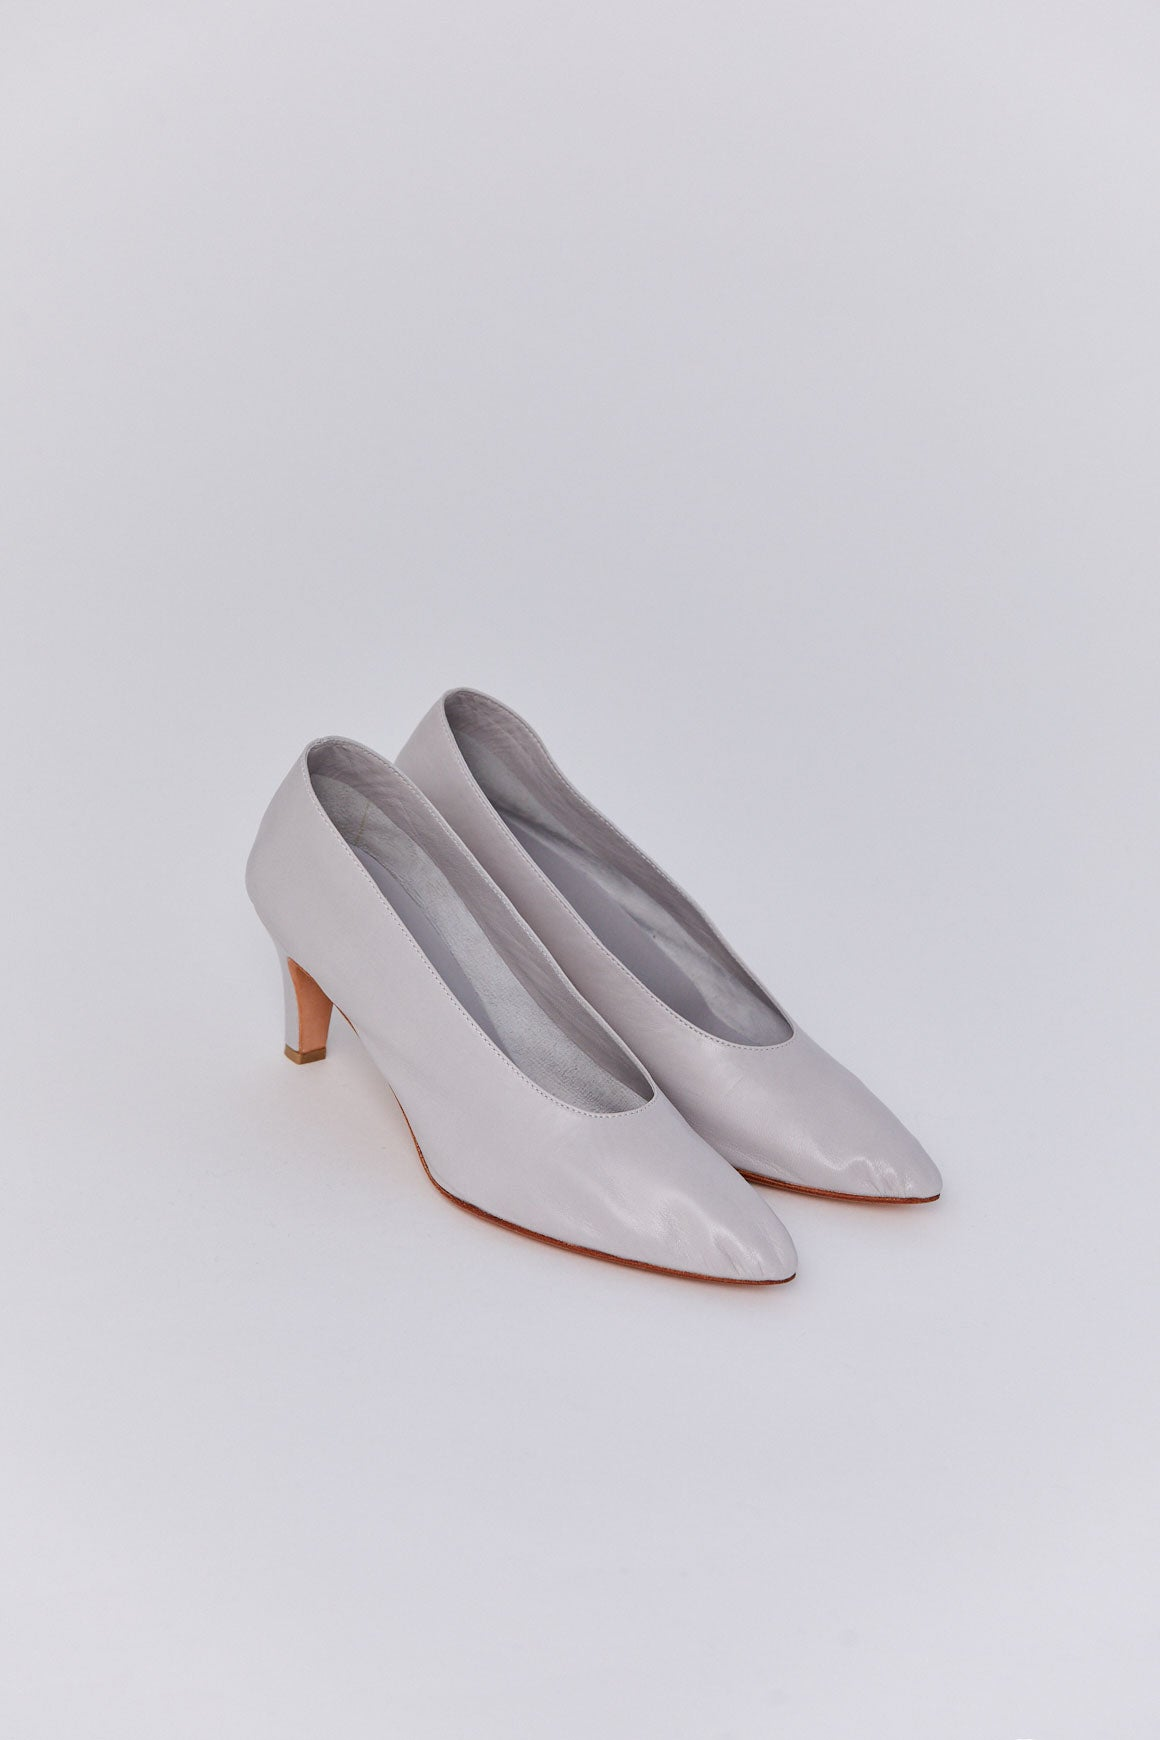 MARTINIANO - Party Pump, Grey